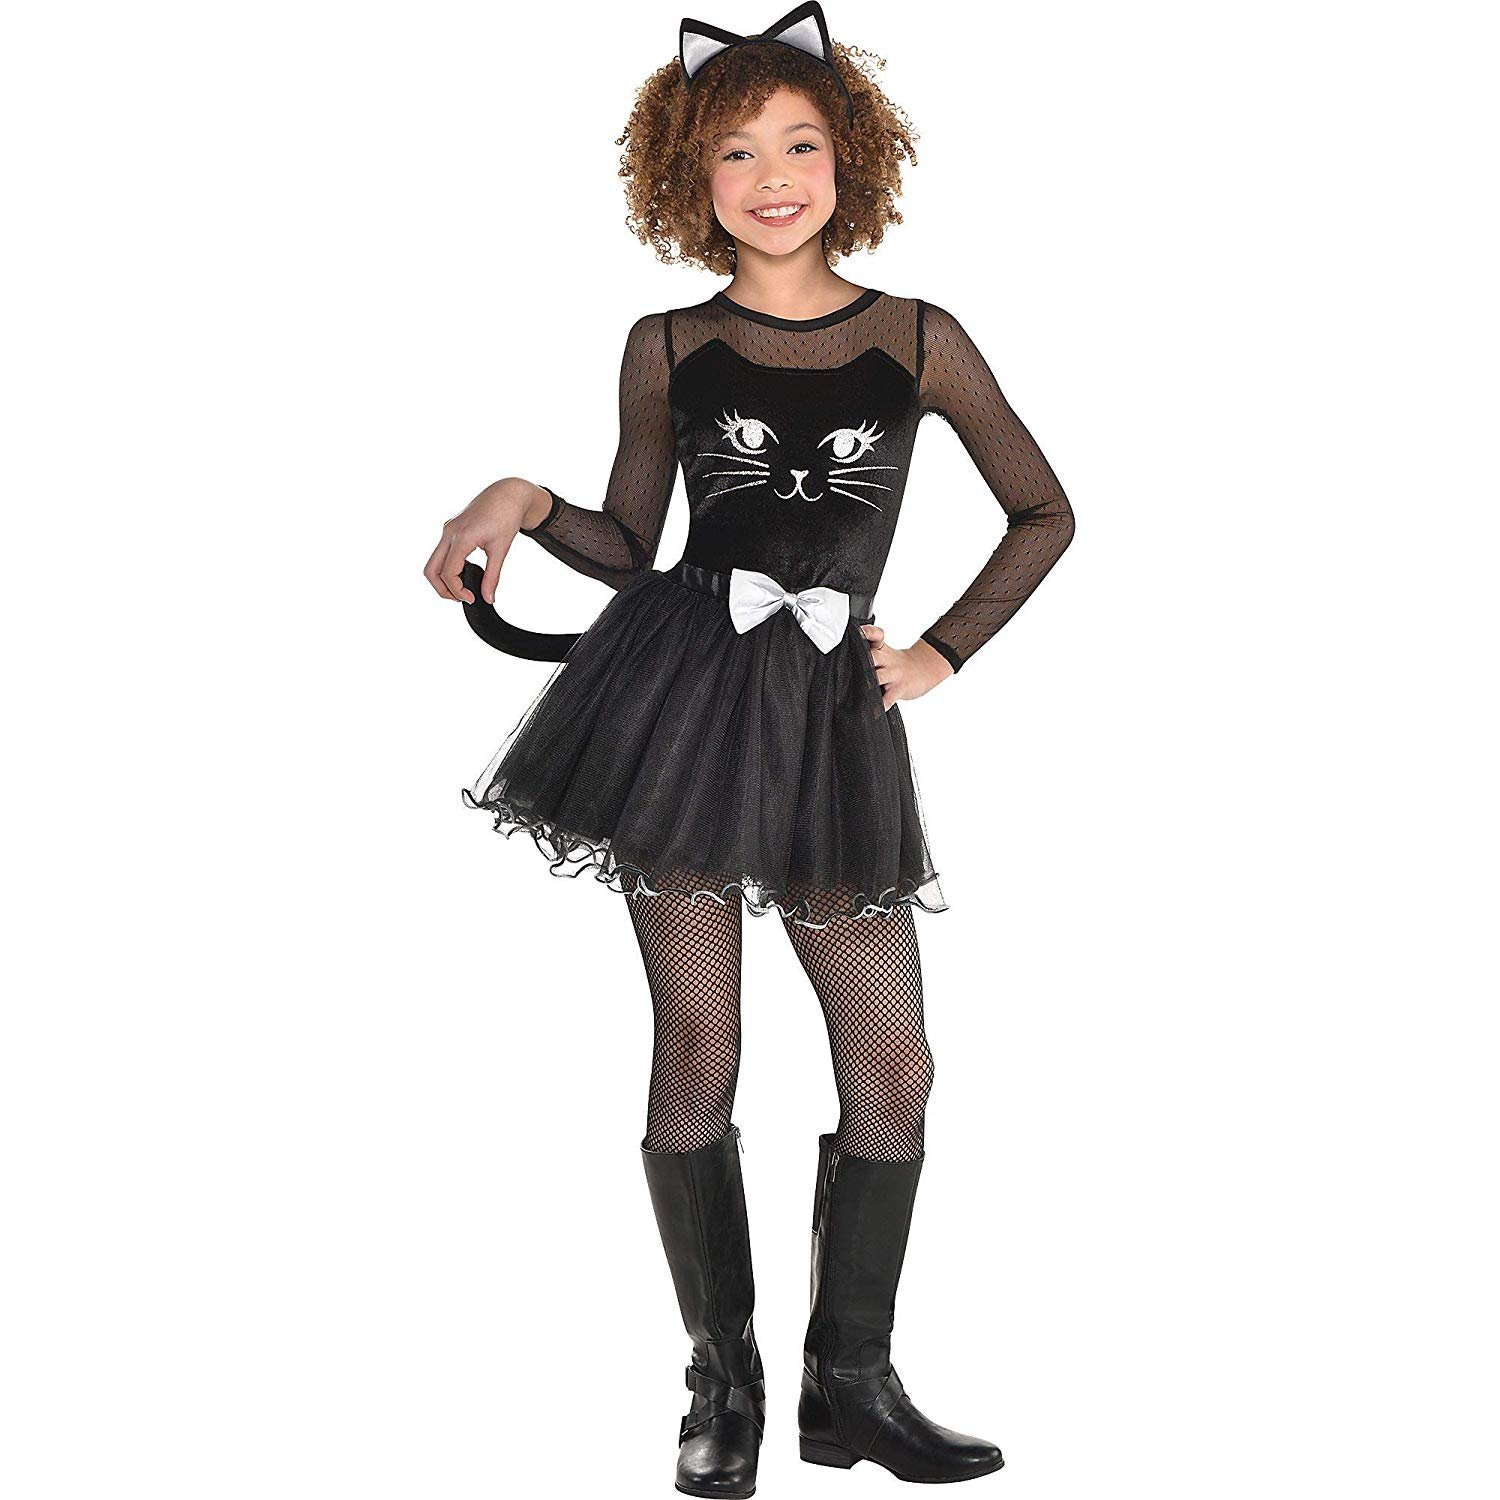 Black Cat Dress Halloween Costume For Girls 3 4t With Included Accessories 13051840891 Ebay We print the highest quality gretchen weiners onesies on the internet. details about black cat dress halloween costume for girls 3 4t with included accessories